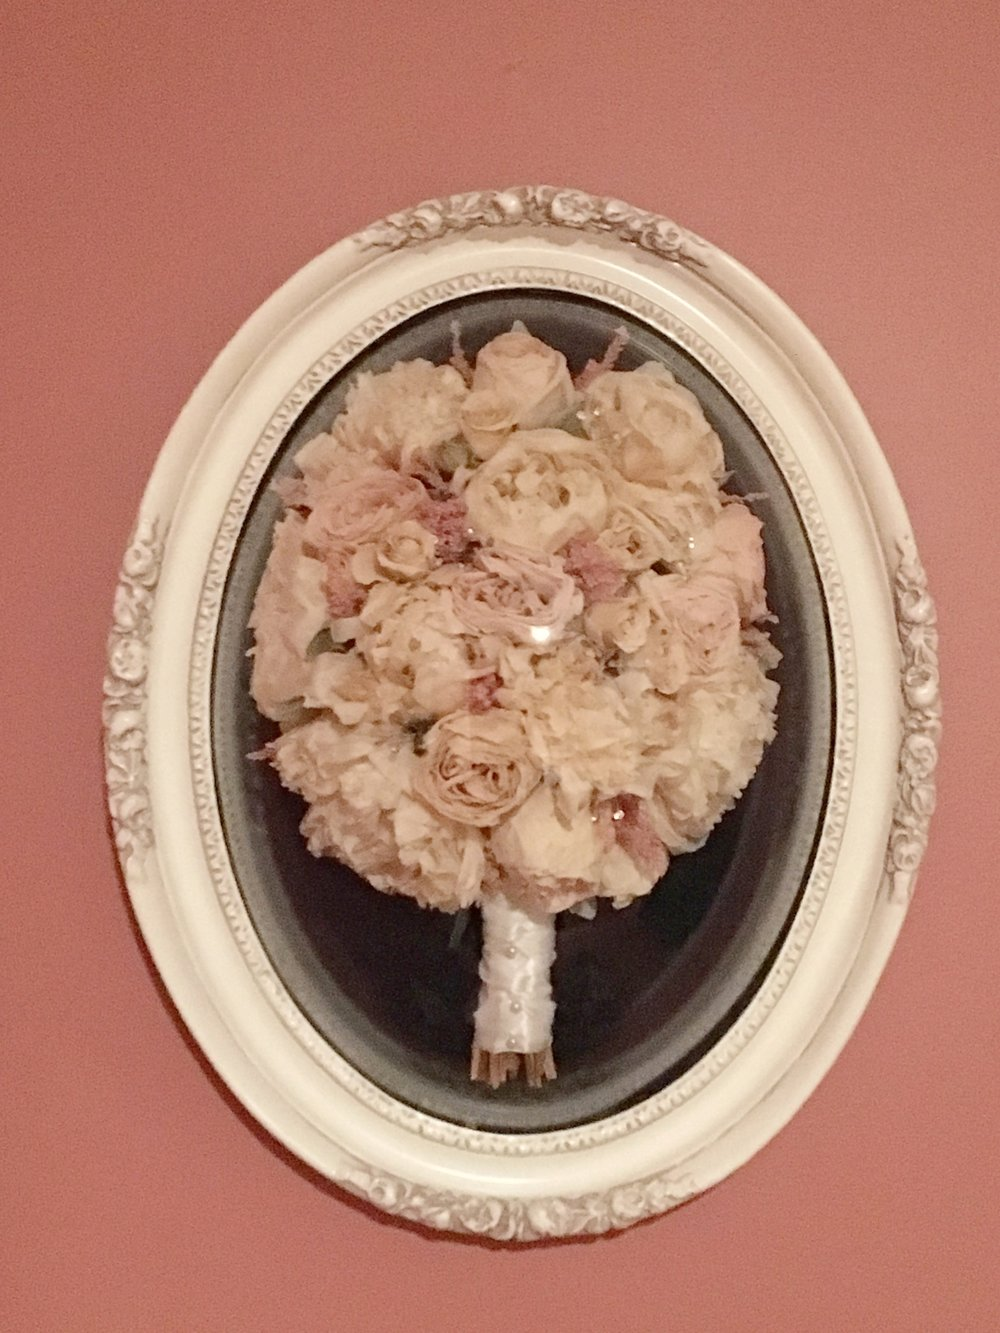 Same bouquet as above - preserved as artwork.